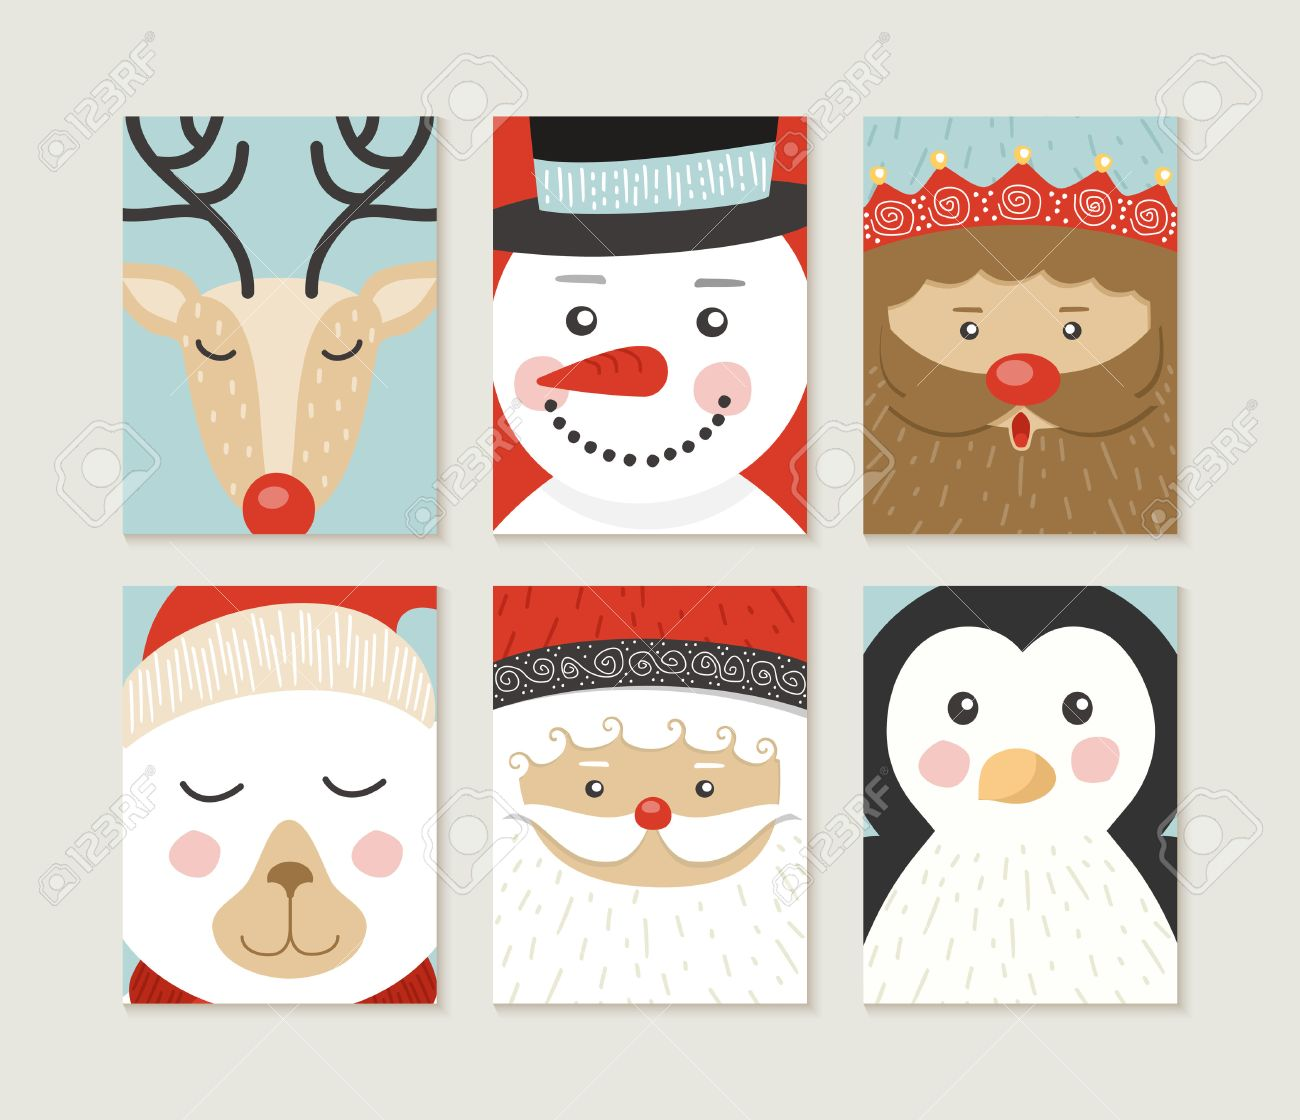 merry christmas design set cute retro designs of winter xmas characters santa bear